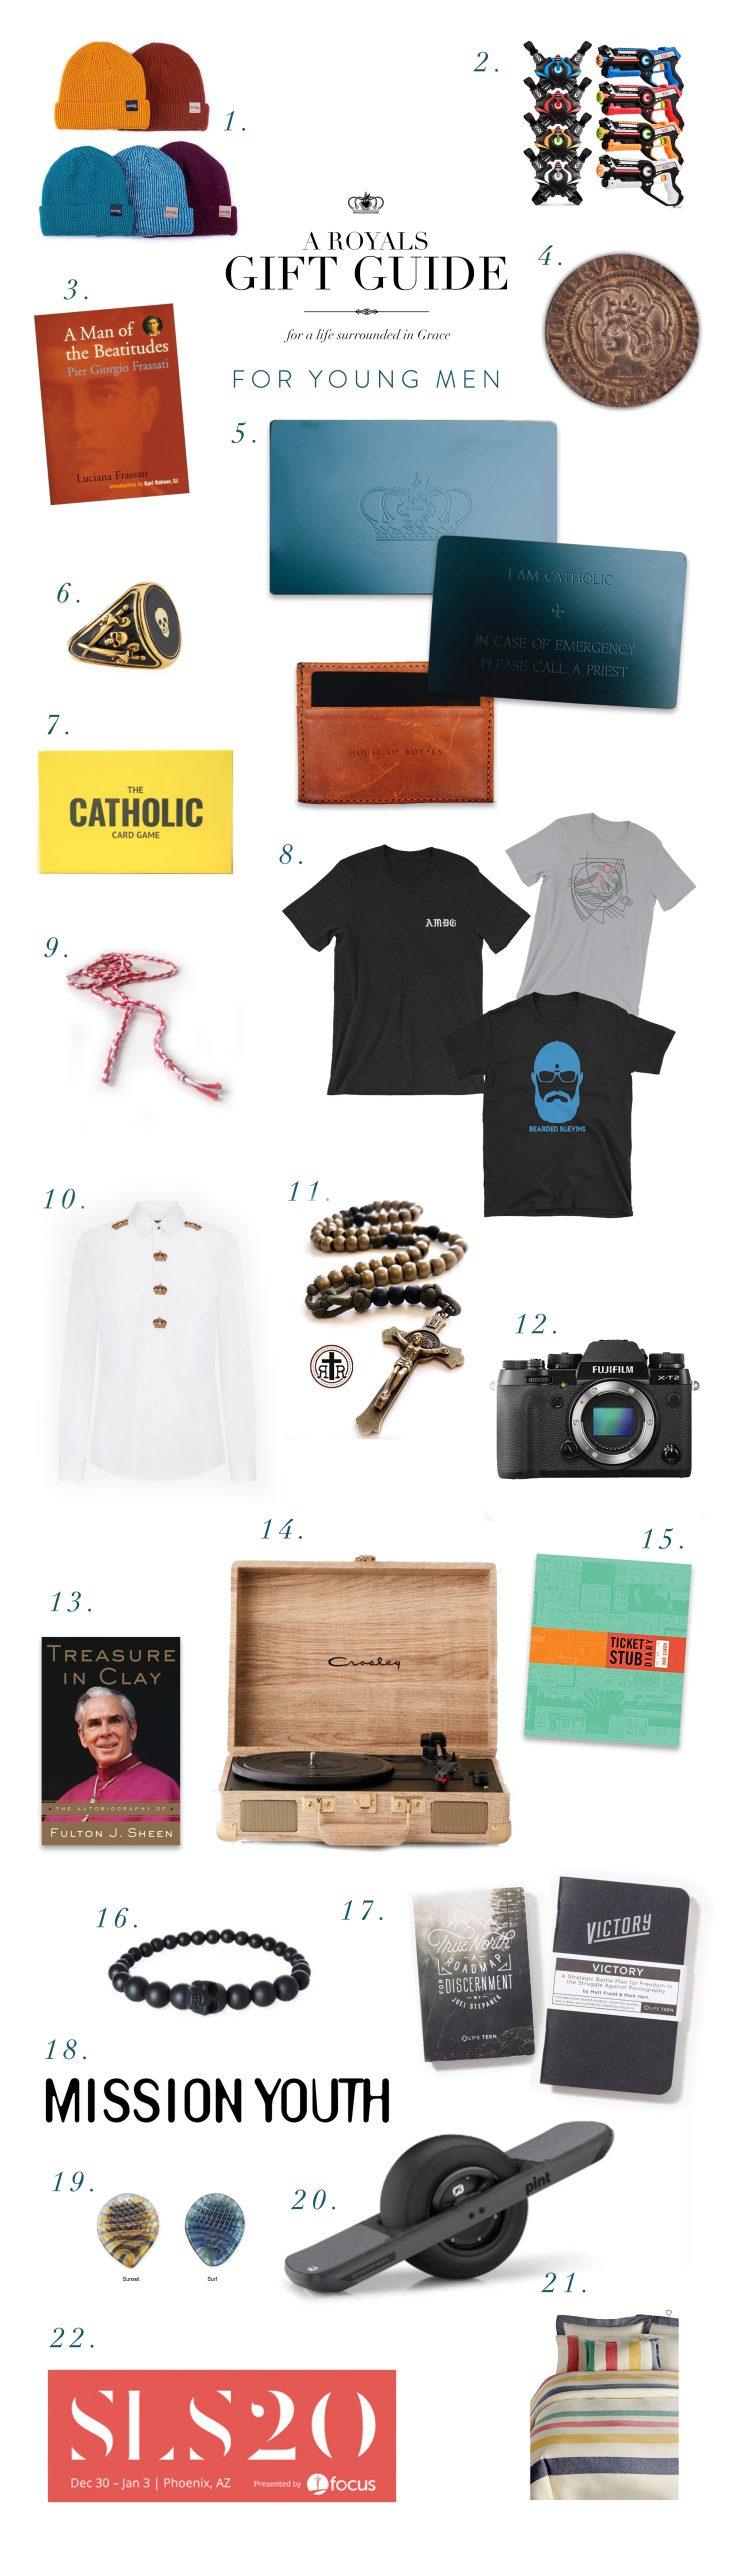 2019 Gift Guide - Young Men